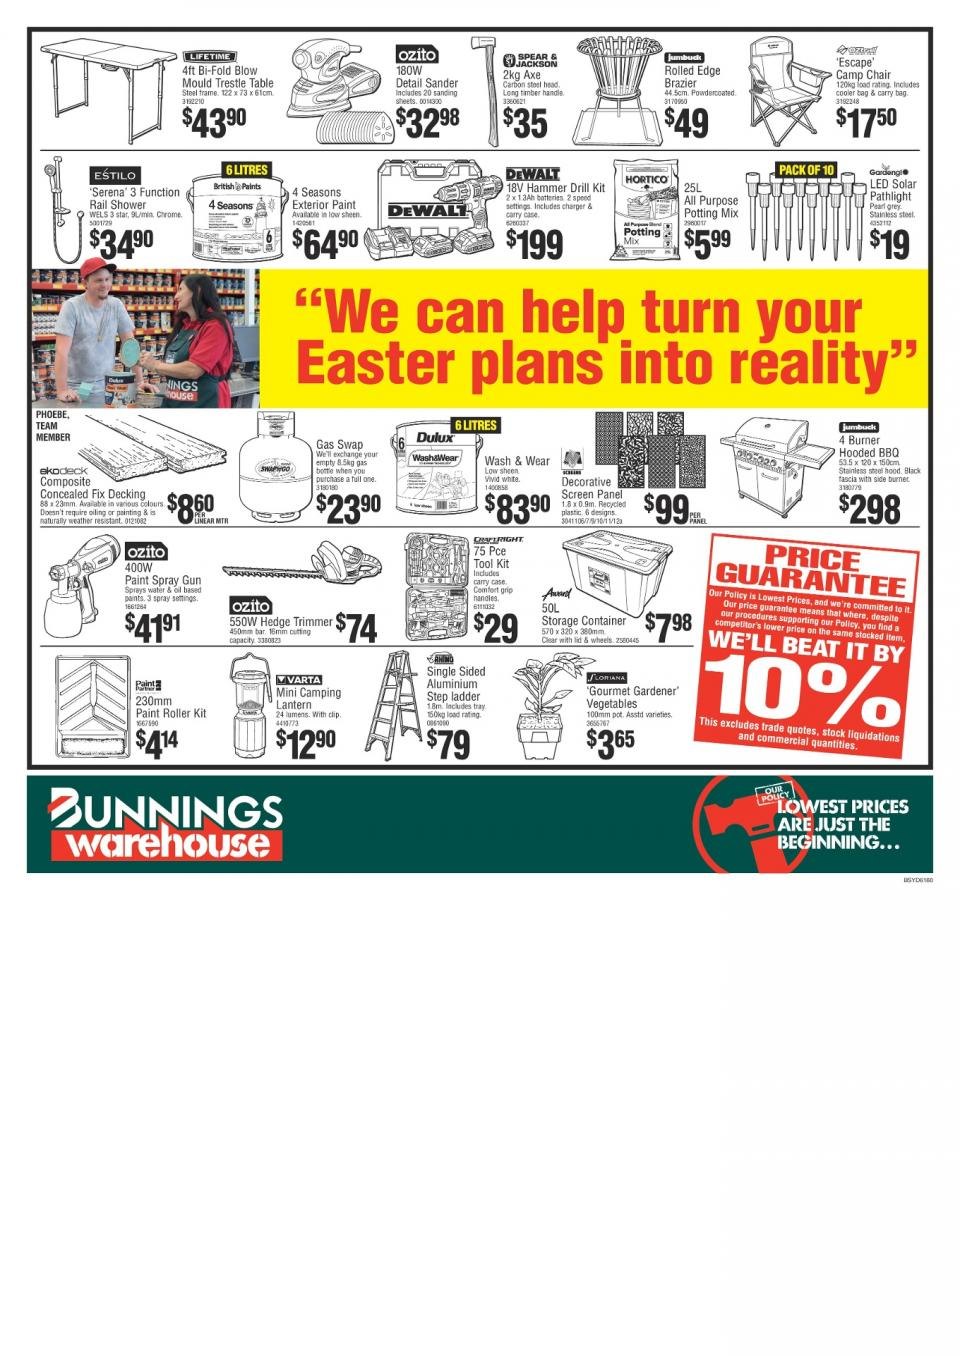 Bunnings Catalogue April 2018 Easter Sale